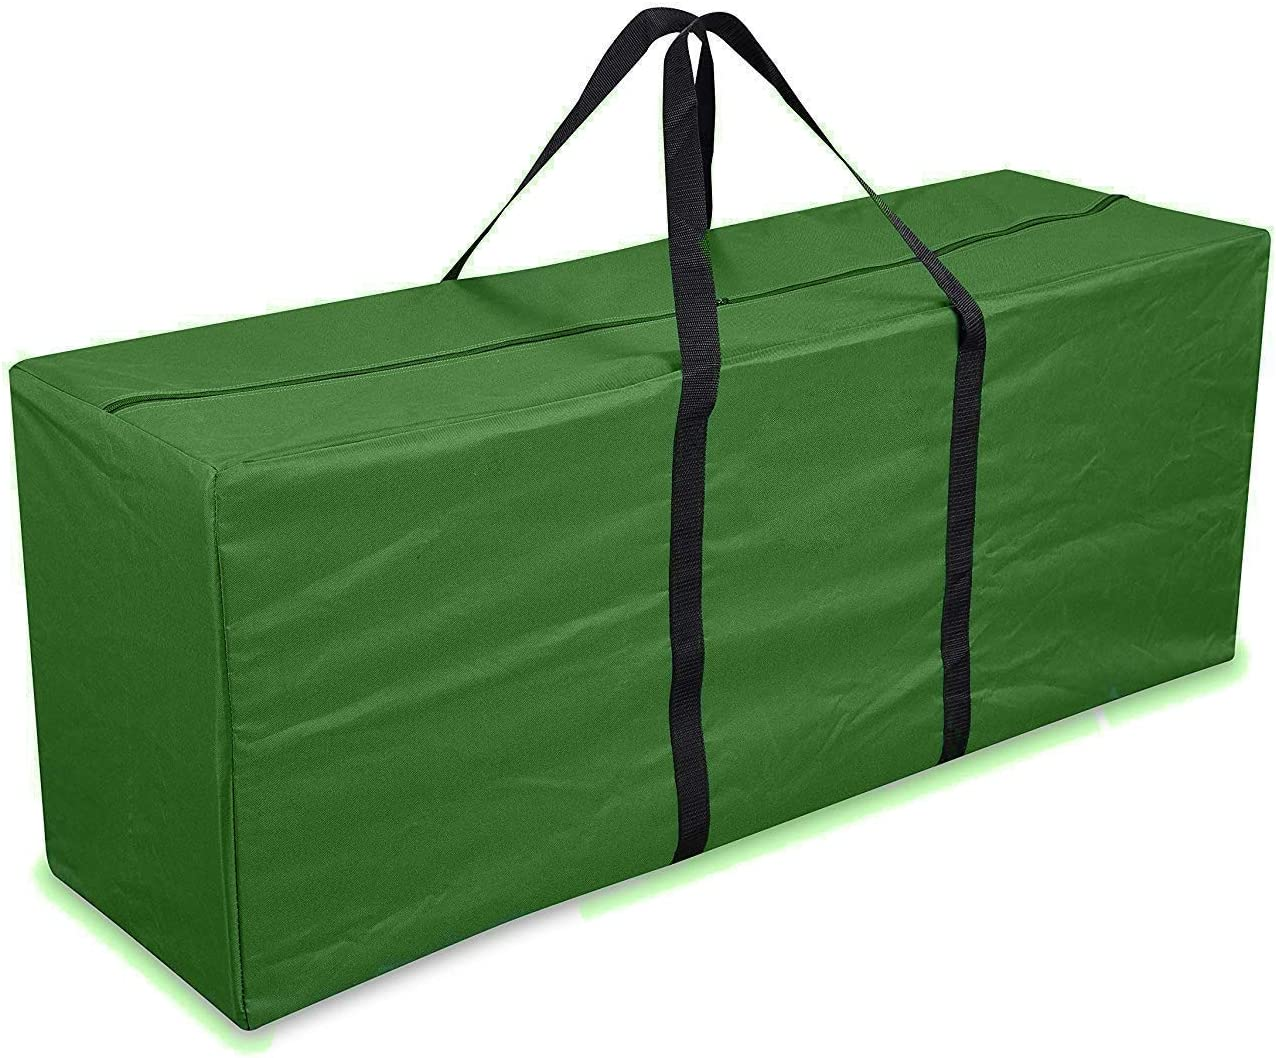 Cushion Cover Patio Furniture Storage Bag with Handles 68'' L x 30'' W x 20'' H Waterproof Zippered Storage Bags for Outdoor Cushions Green